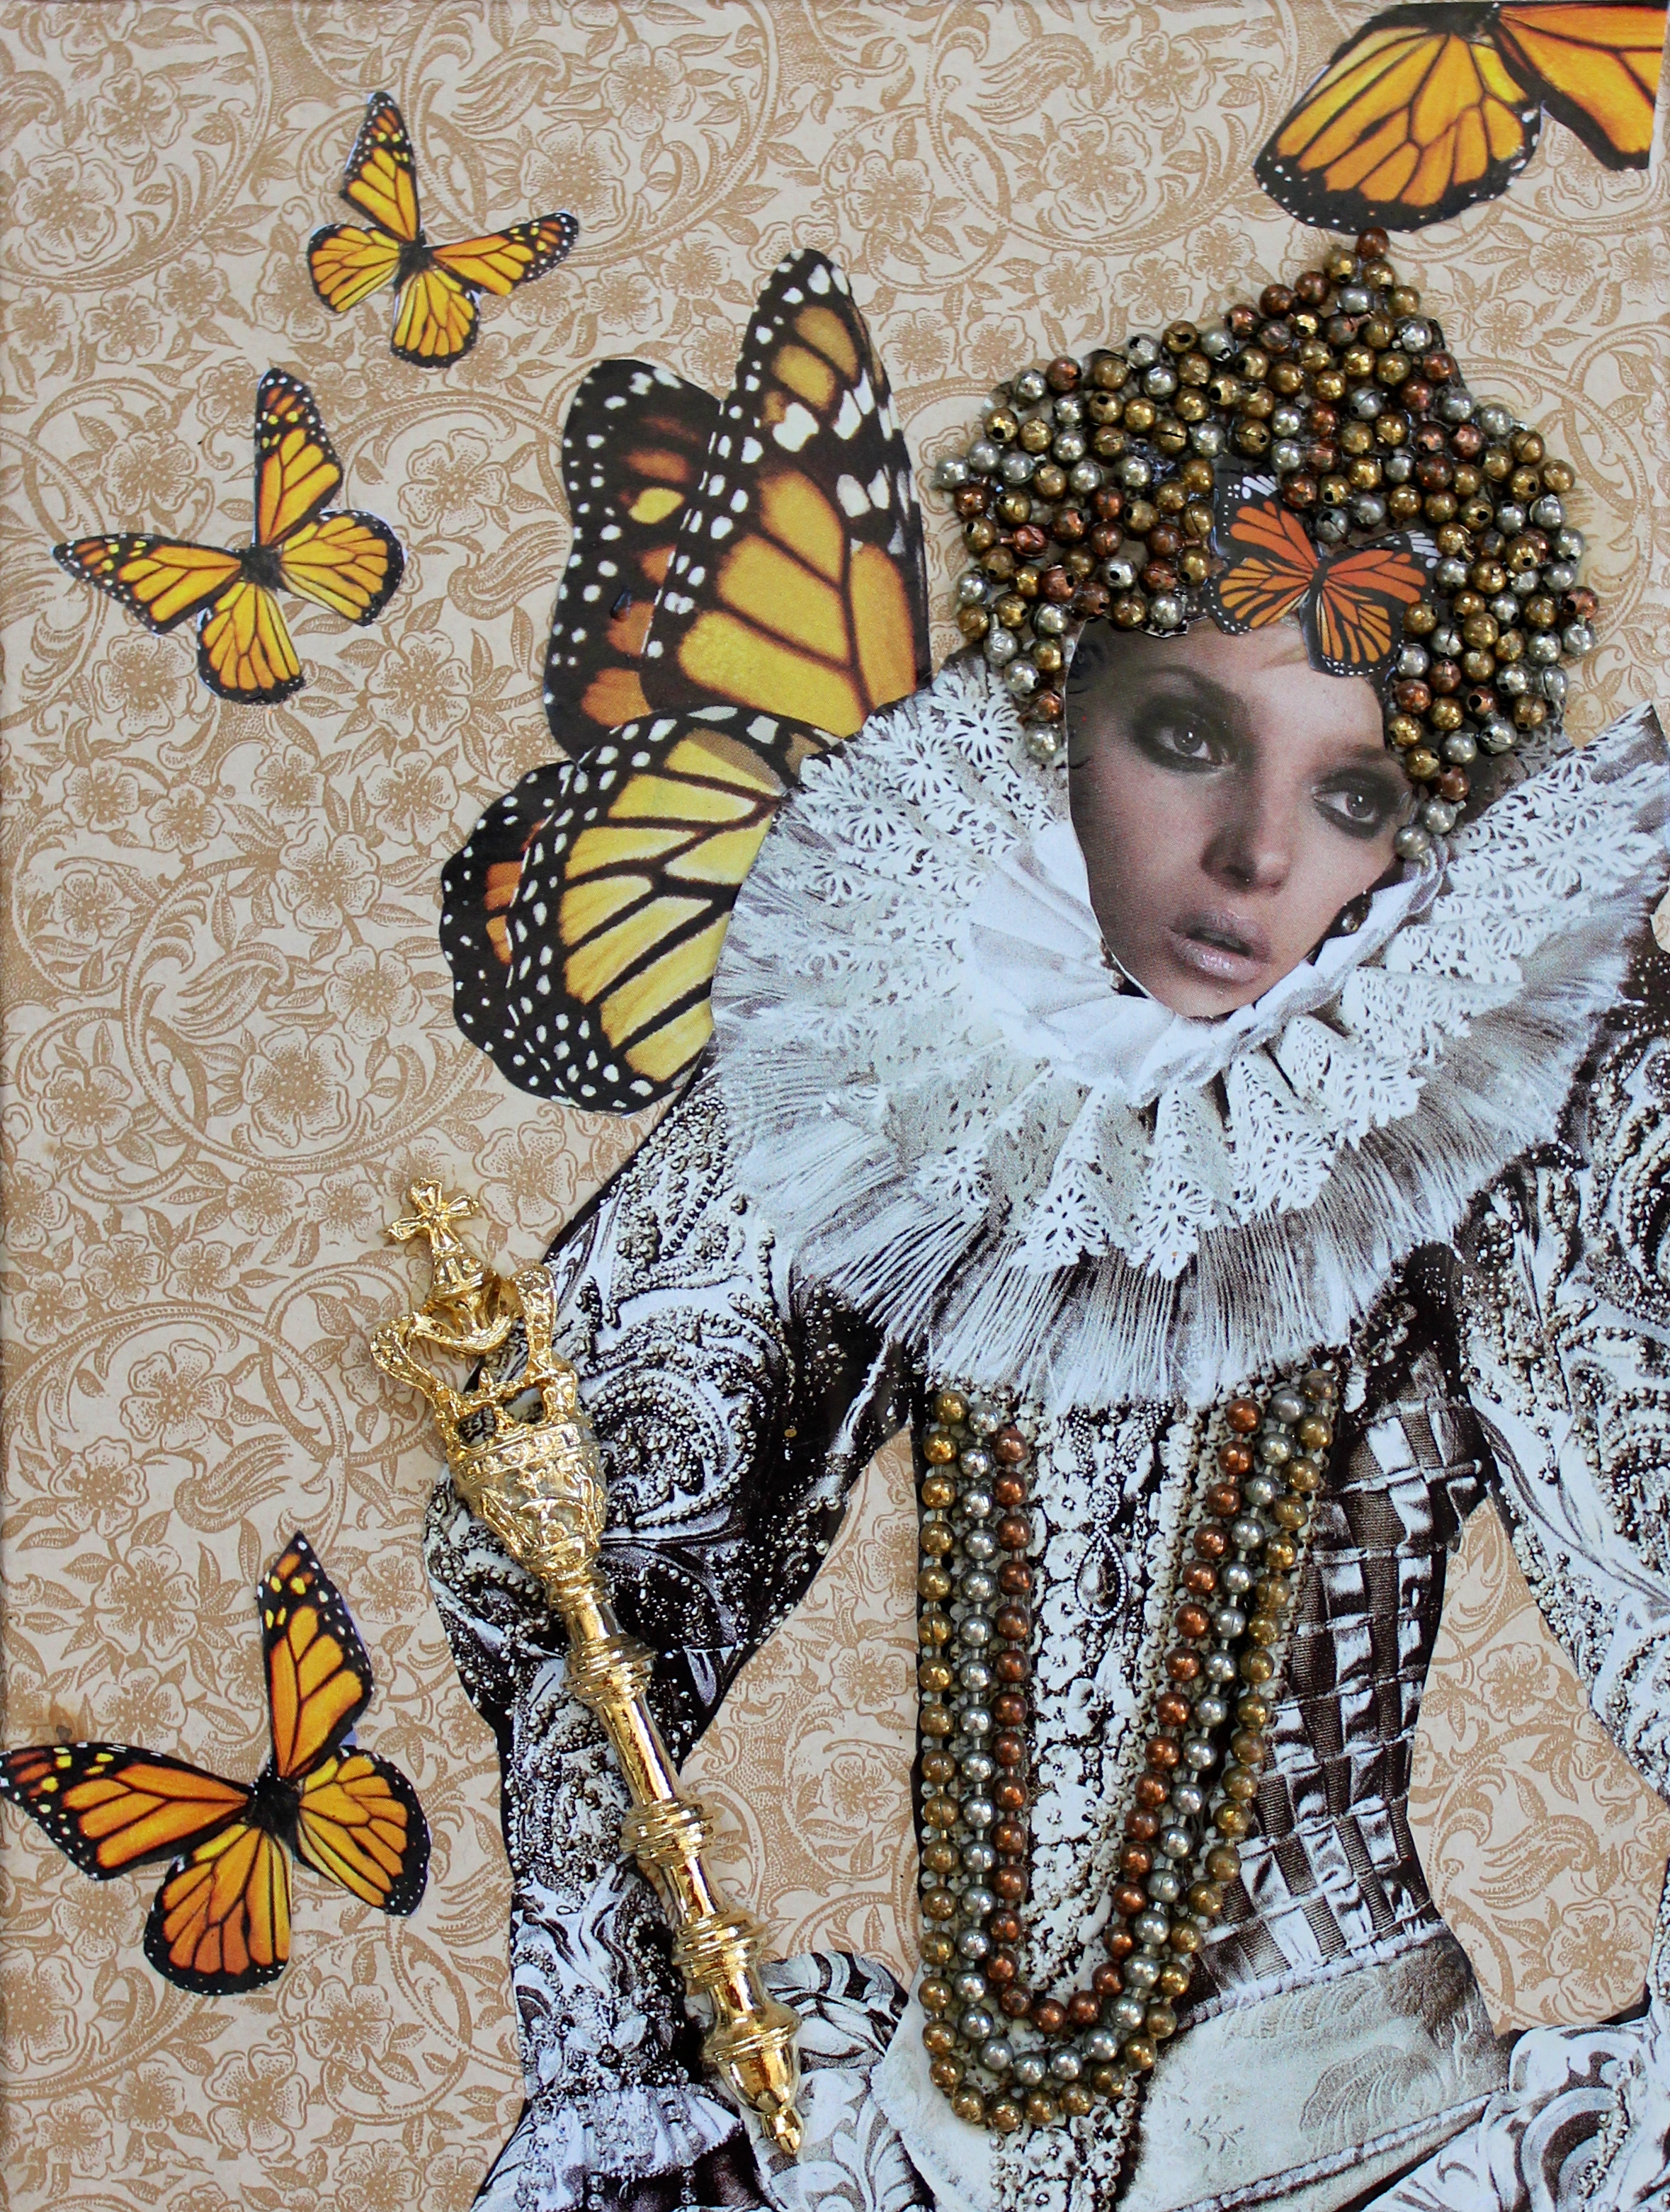 """""""The Butterfly Queen""""  Materials used: Paper ephemera, pin, key chain"""